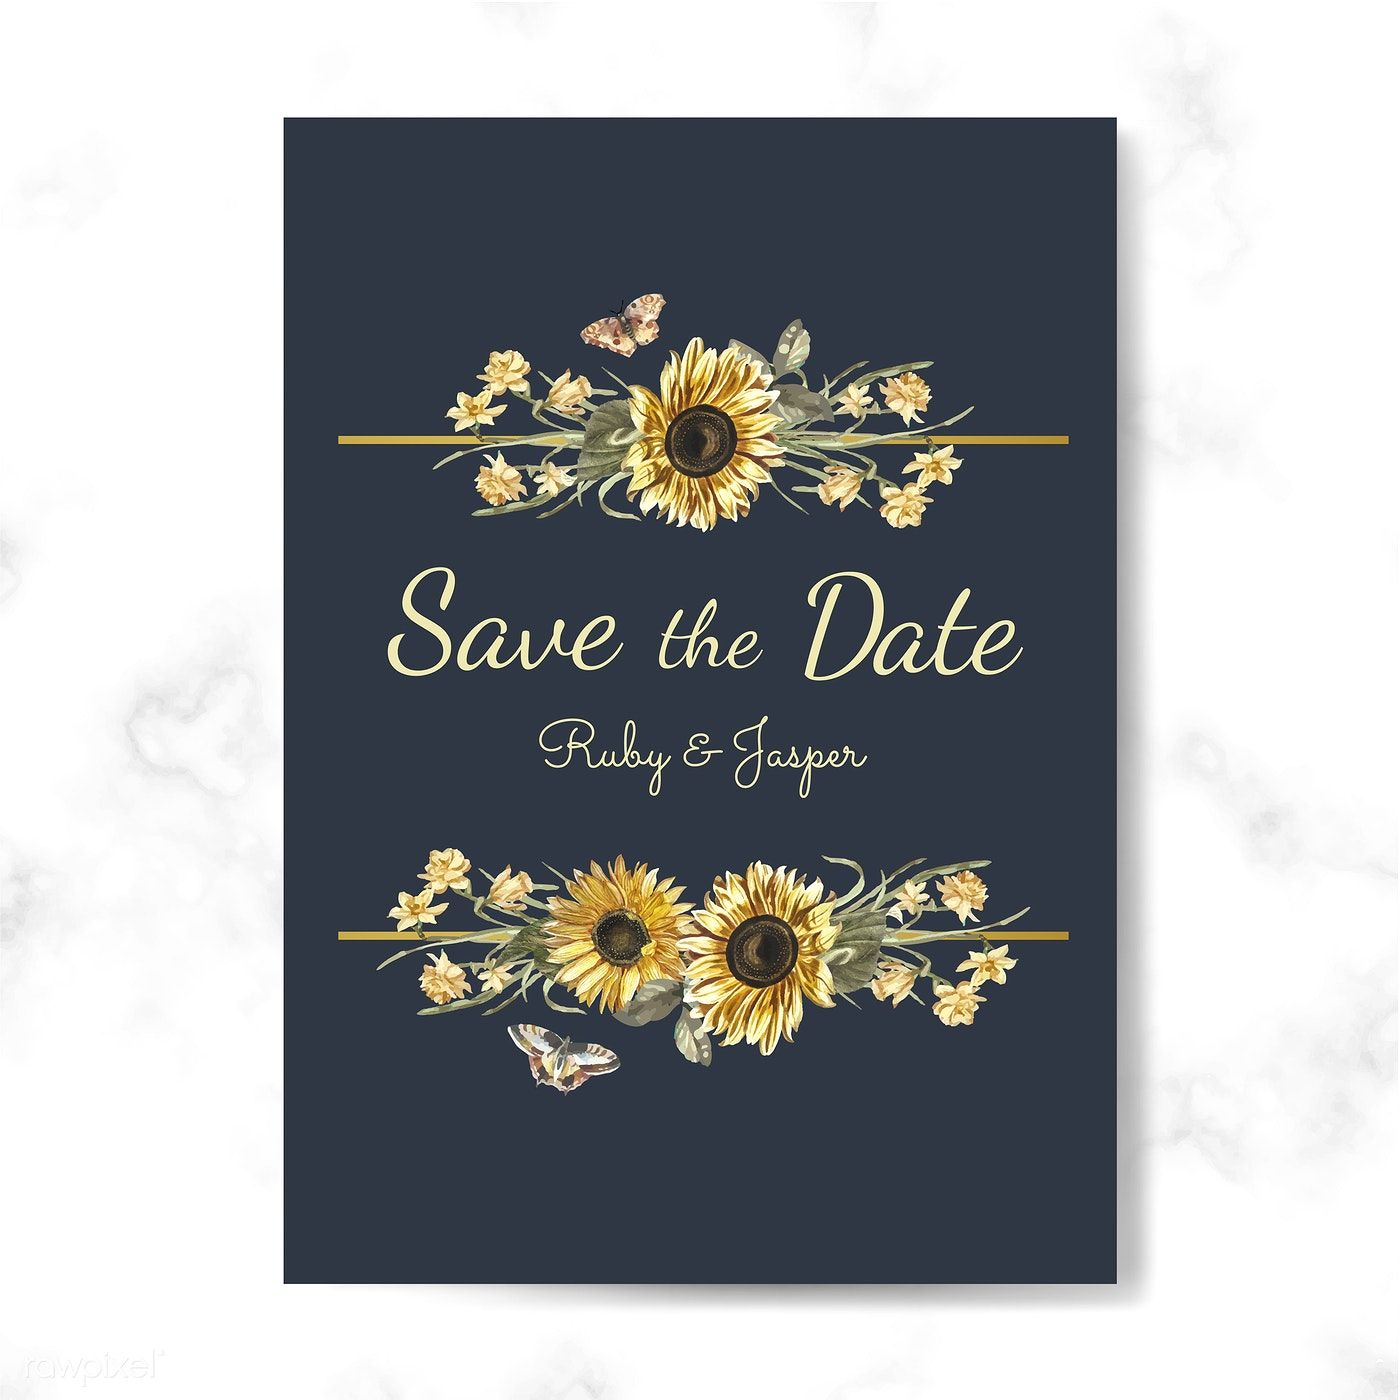 Save the date wedding invitation mockup vector free